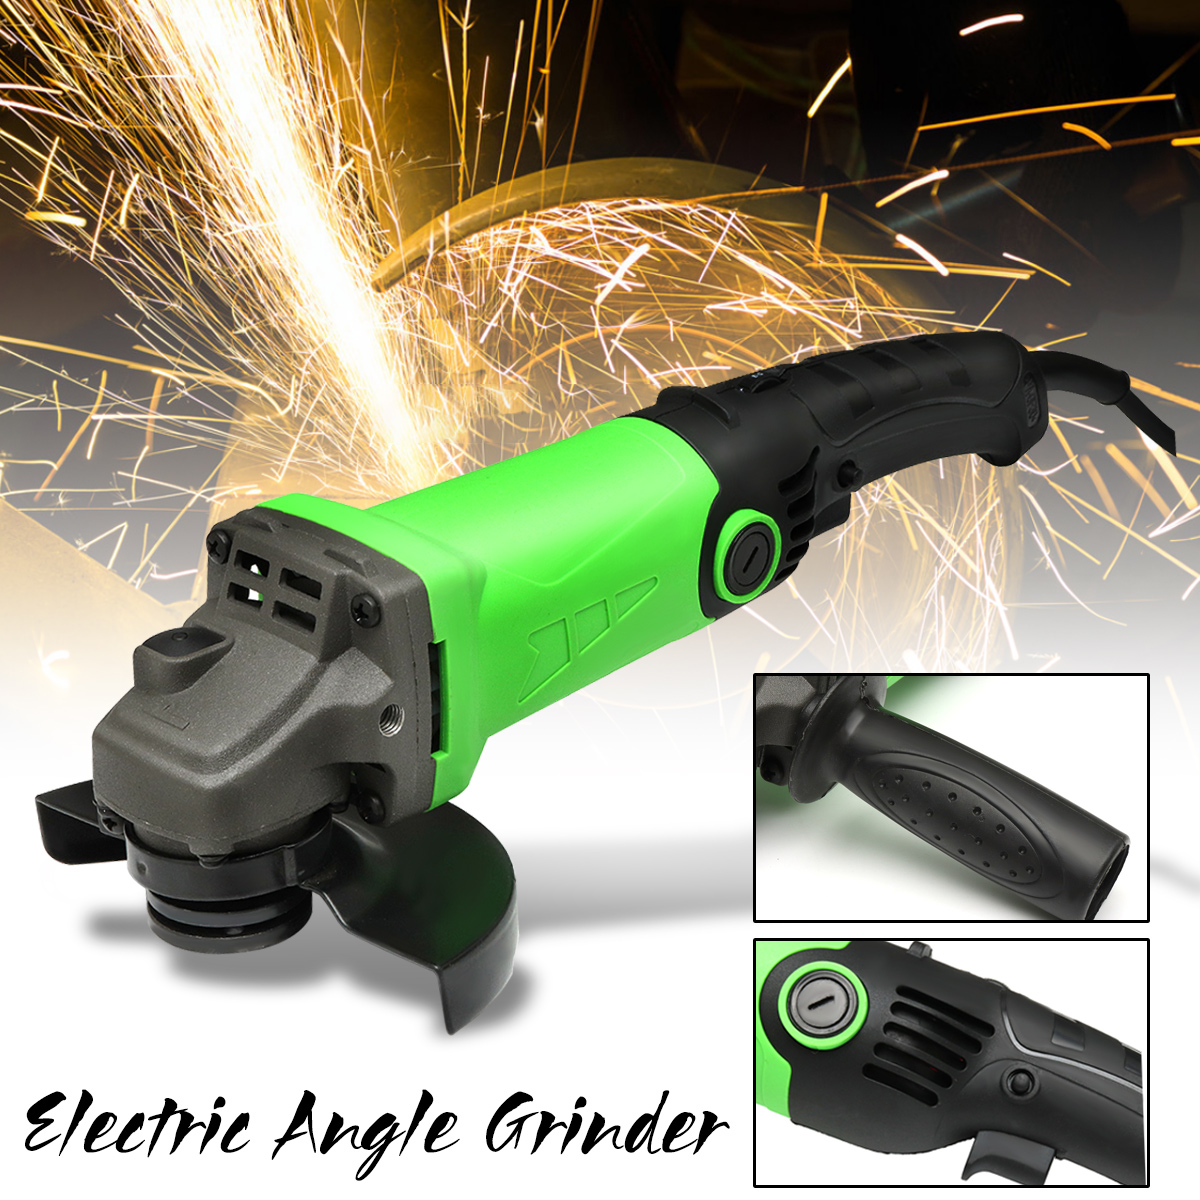 1Pcs 1200W Multi-function Angle Grinder 6 Levels Speed Adjustable Polishing Machine Refit Angle Grind Grinding Drilling Tools vibration type pneumatic sanding machine rectangle grinding machine sand vibration machine polishing machine 70x100mm